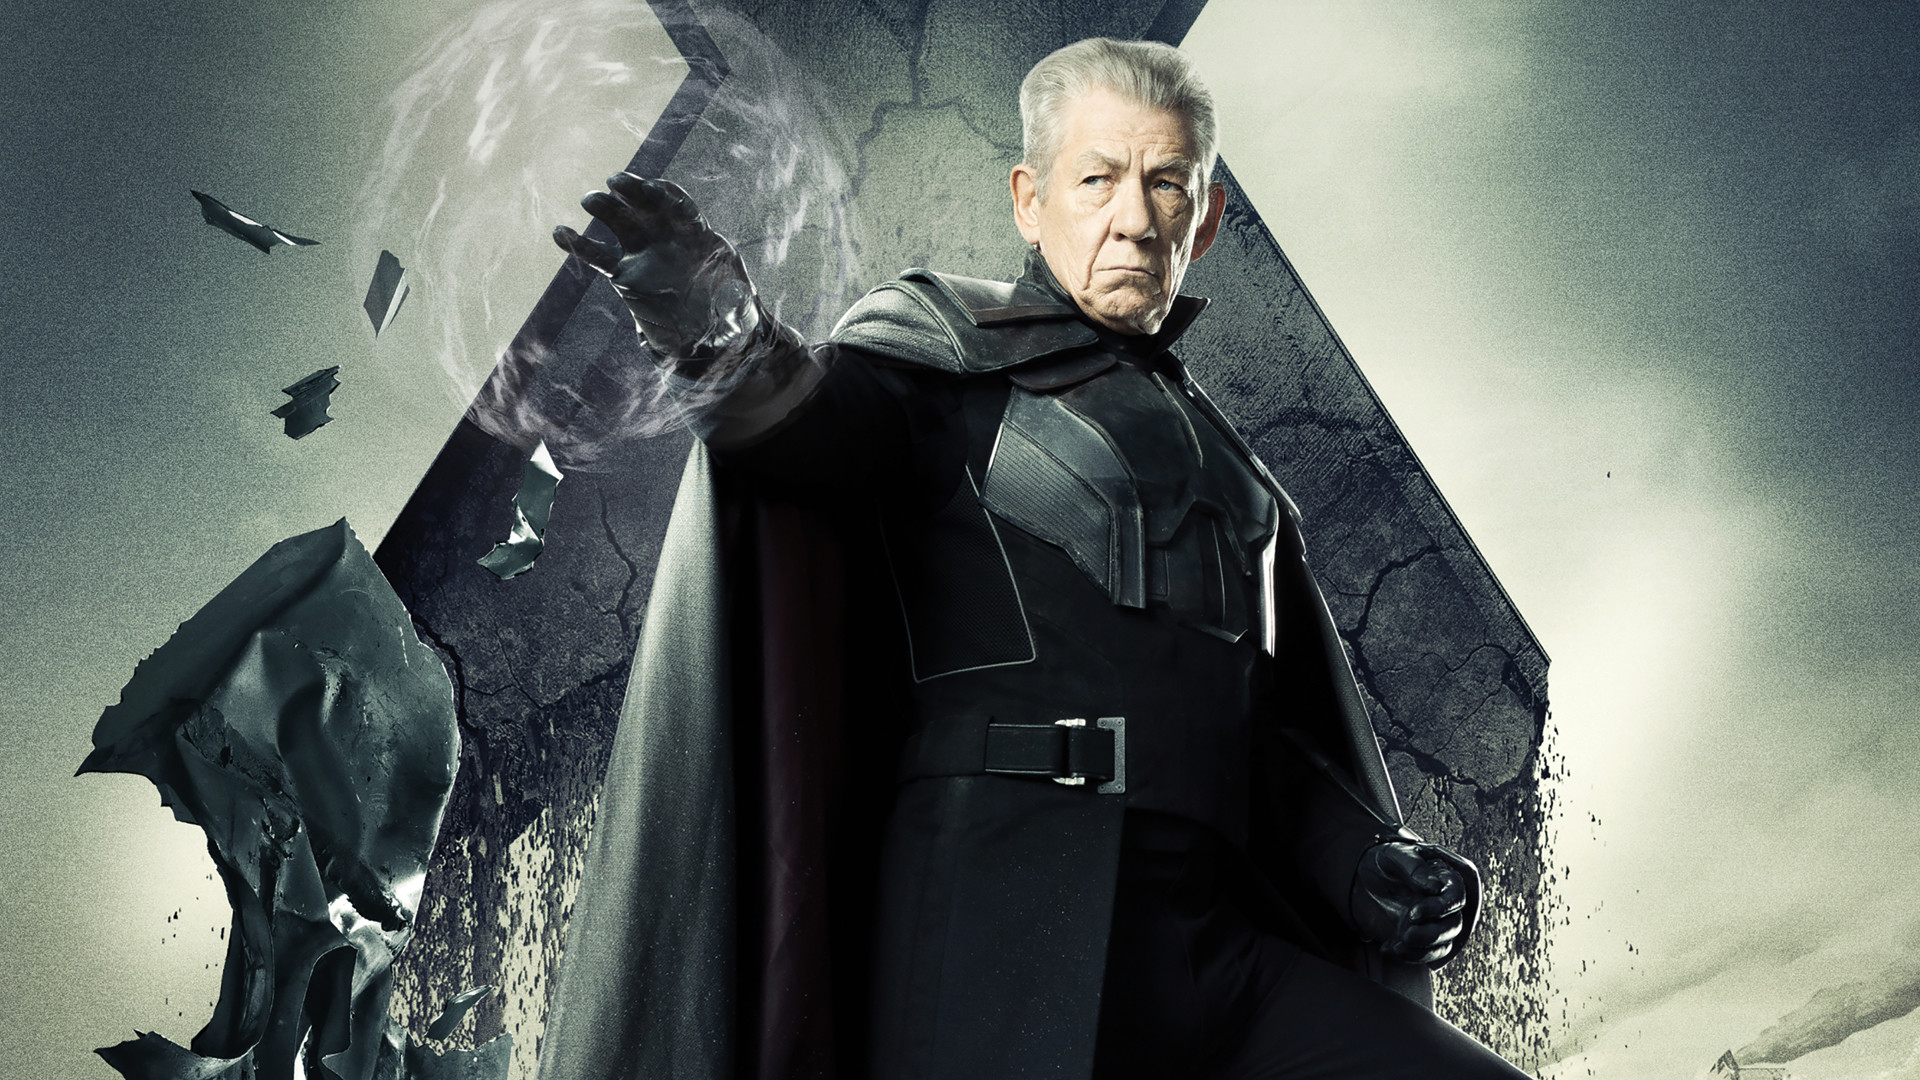 1920x1080 ian mckellen as magneto / erik lehnsherr in x men days of future past